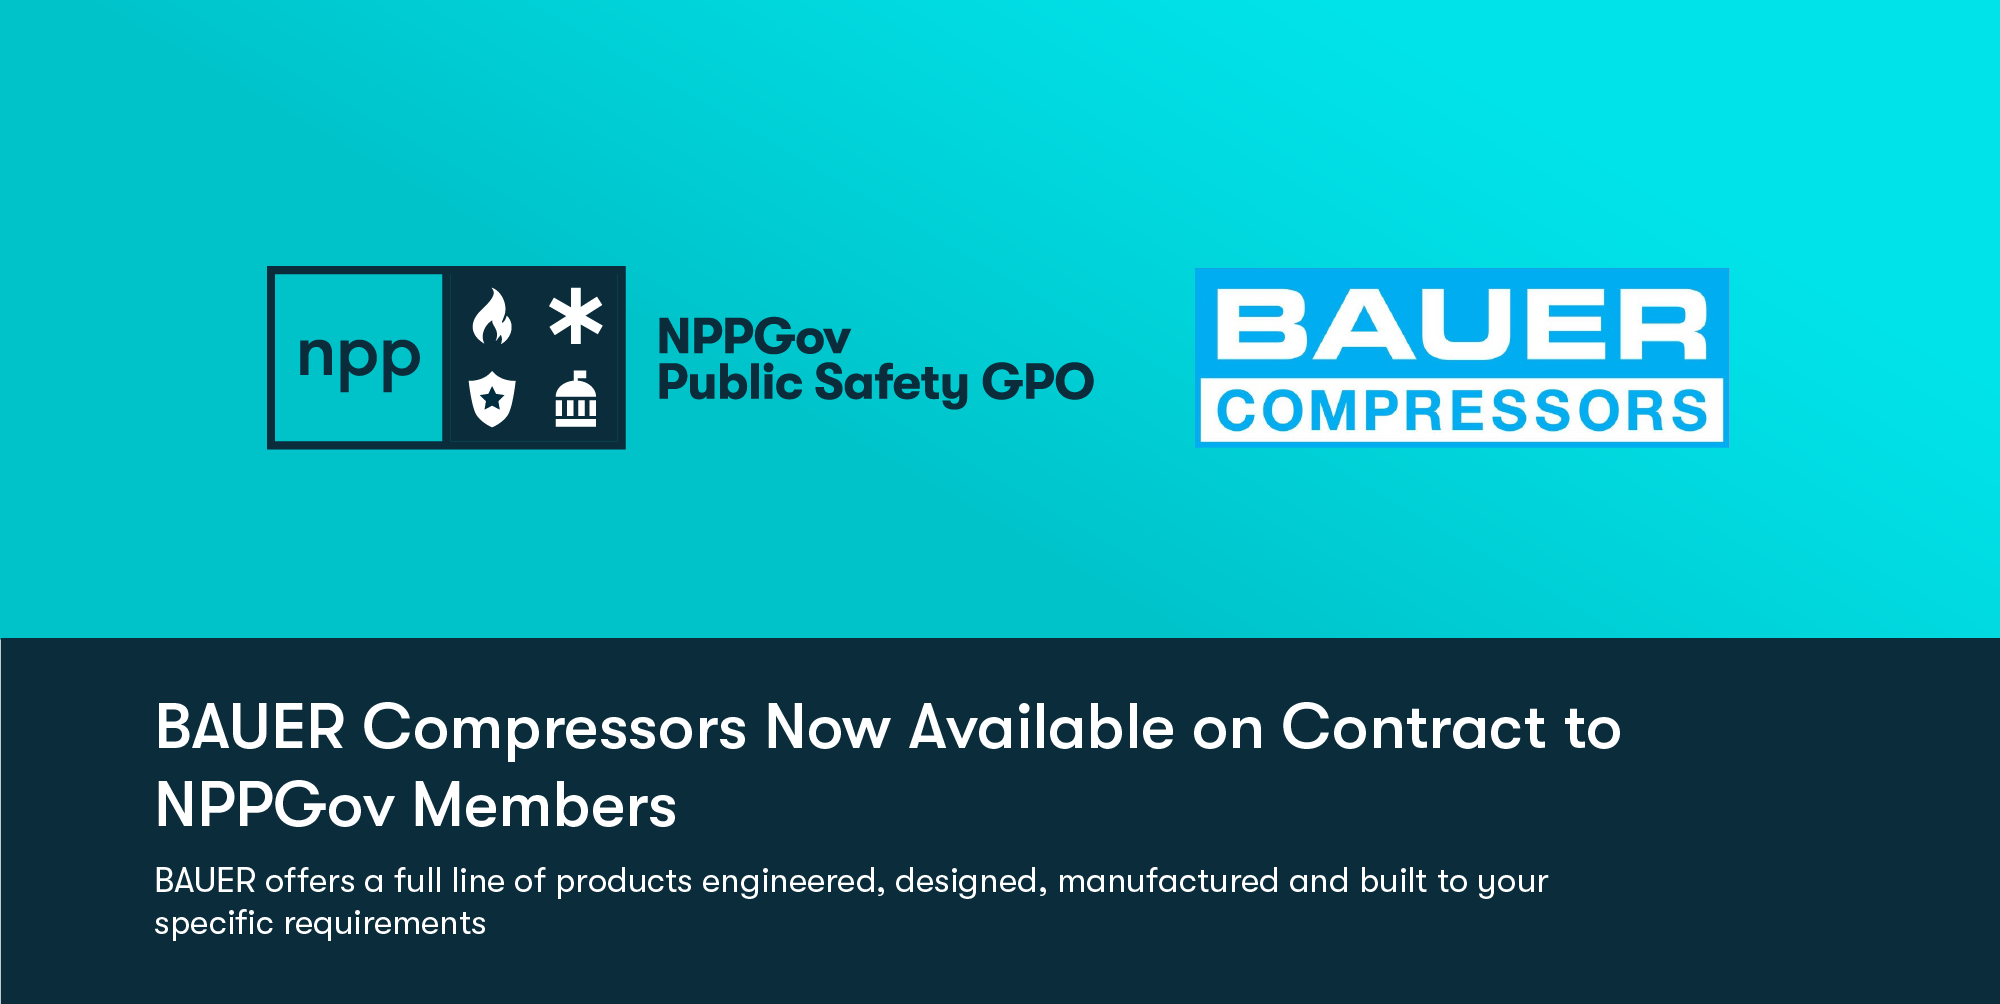 BAUER Compressors Joins NPPGov as an Approved Vendor Specializing in High-Pressure Systems